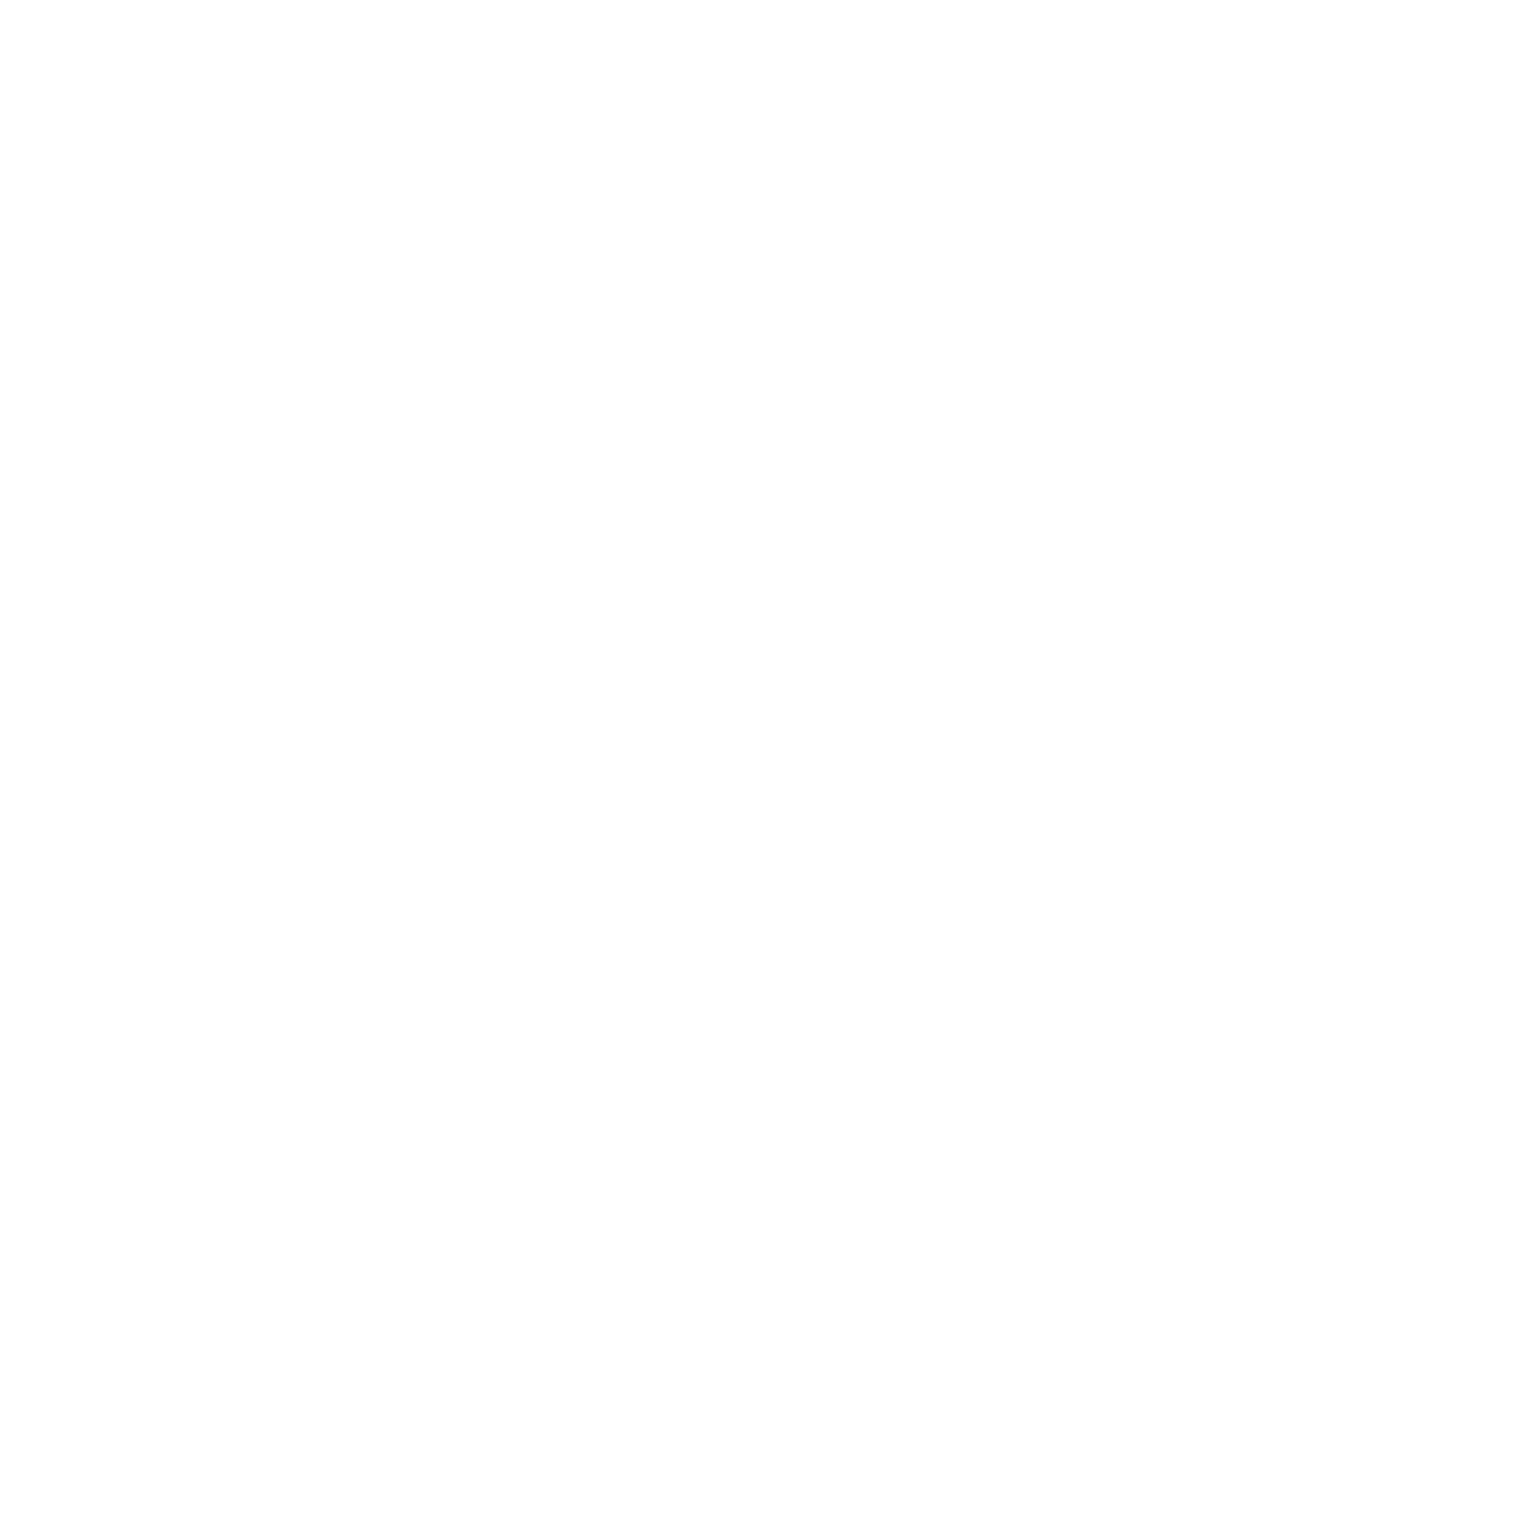 TriangleD.png